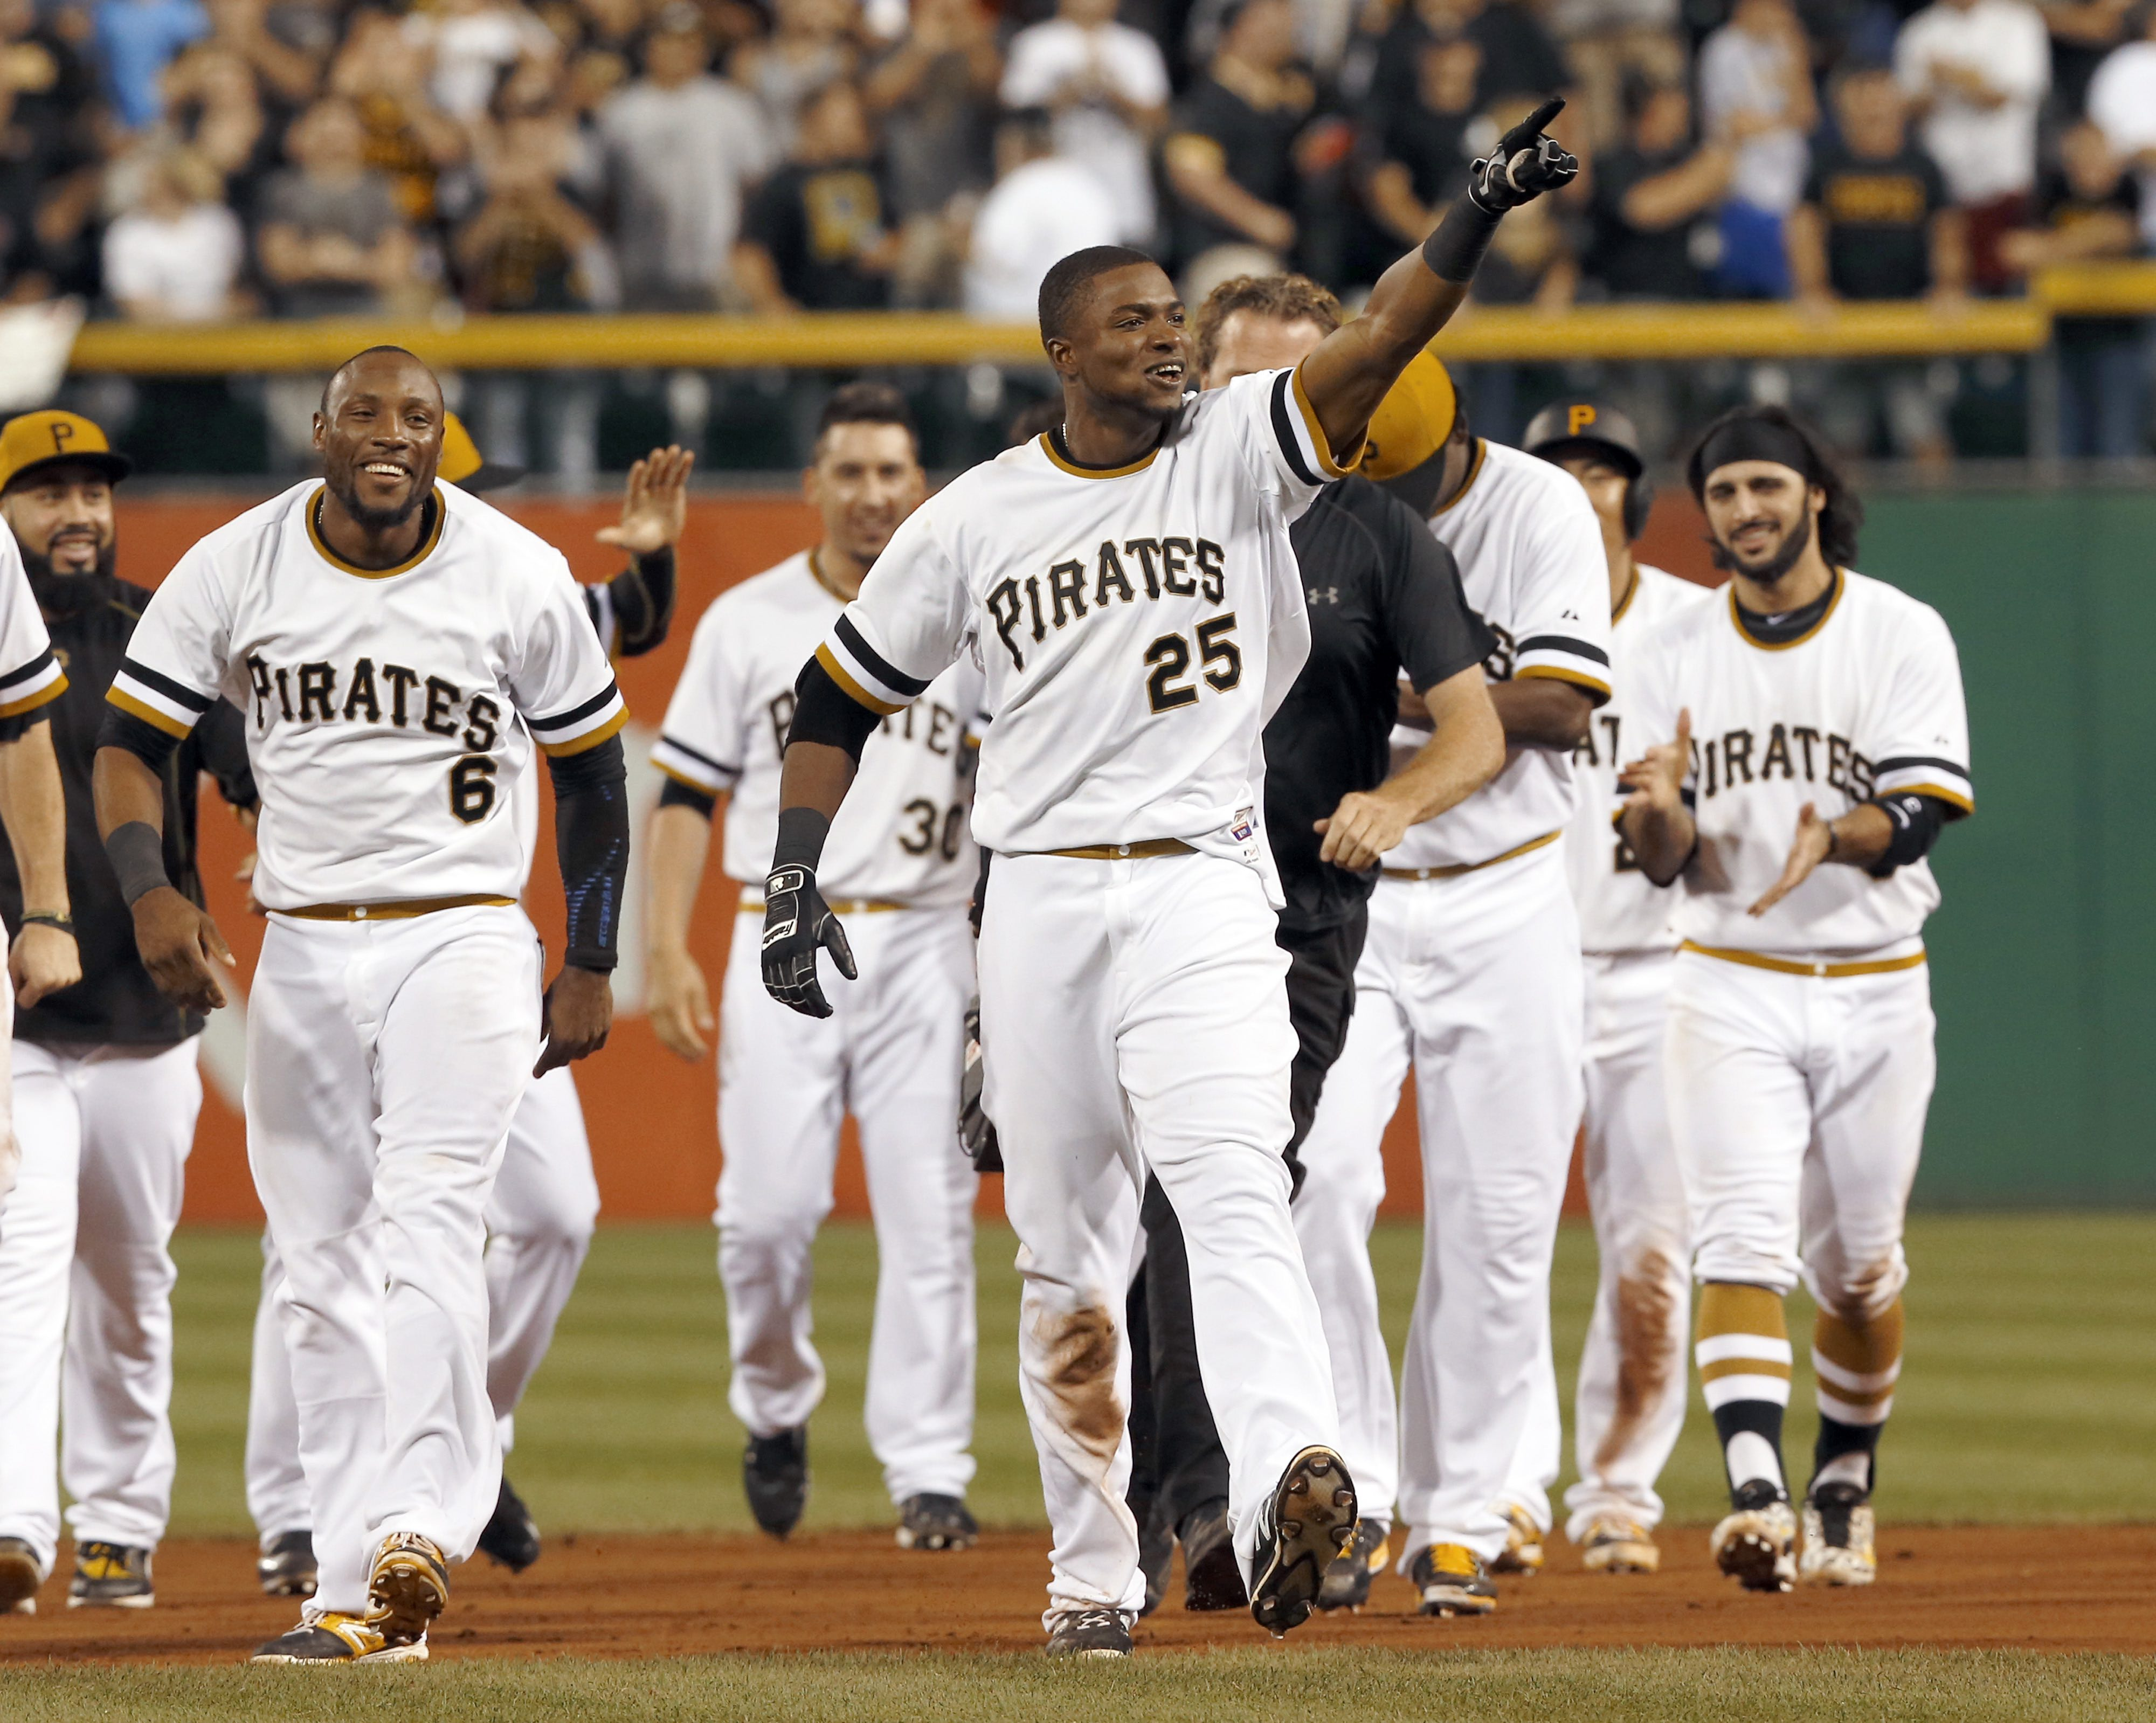 Pittsburgh Pirates' Gregory Polanco (25) points to the stands as he leaves the field while celebrating with teammates after driving in the winning run to defeat the St. Louis Cardinals in the tenth inning of a baseball game, Sunday, July 12, 2015, in Pittsburgh. The Pirates won 6-5 in 10 innings. (AP Photo/Keith Srakocic)